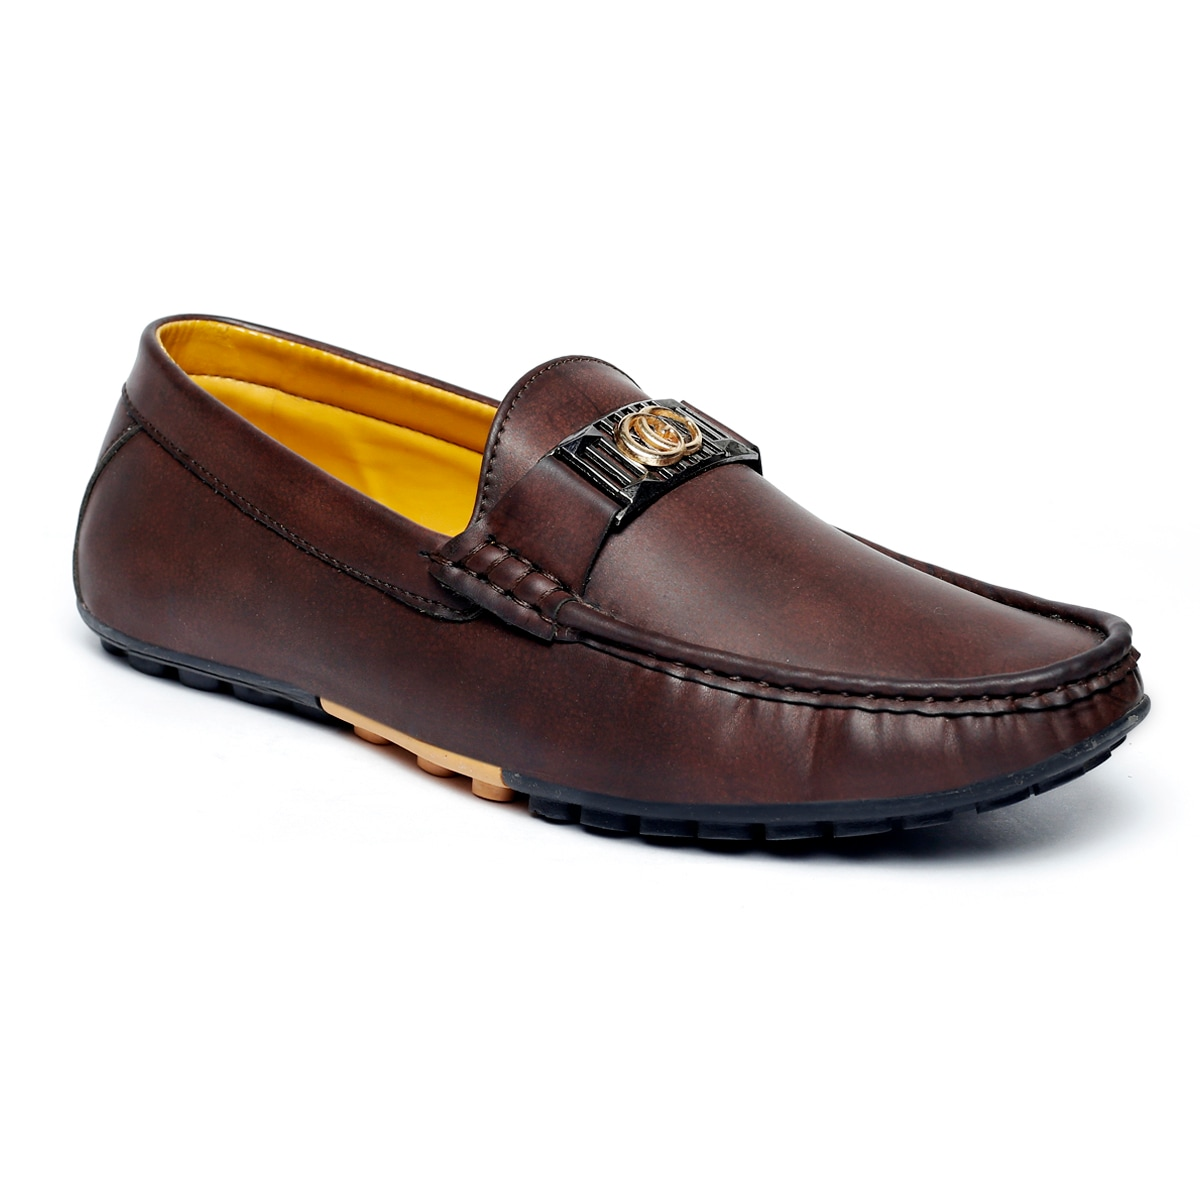 JK PORT COMFORTABLE, FASHIONABLE AND TRENDY LOAFERS JKPLF040BRN (BROWN,6-10,8 PAIR)